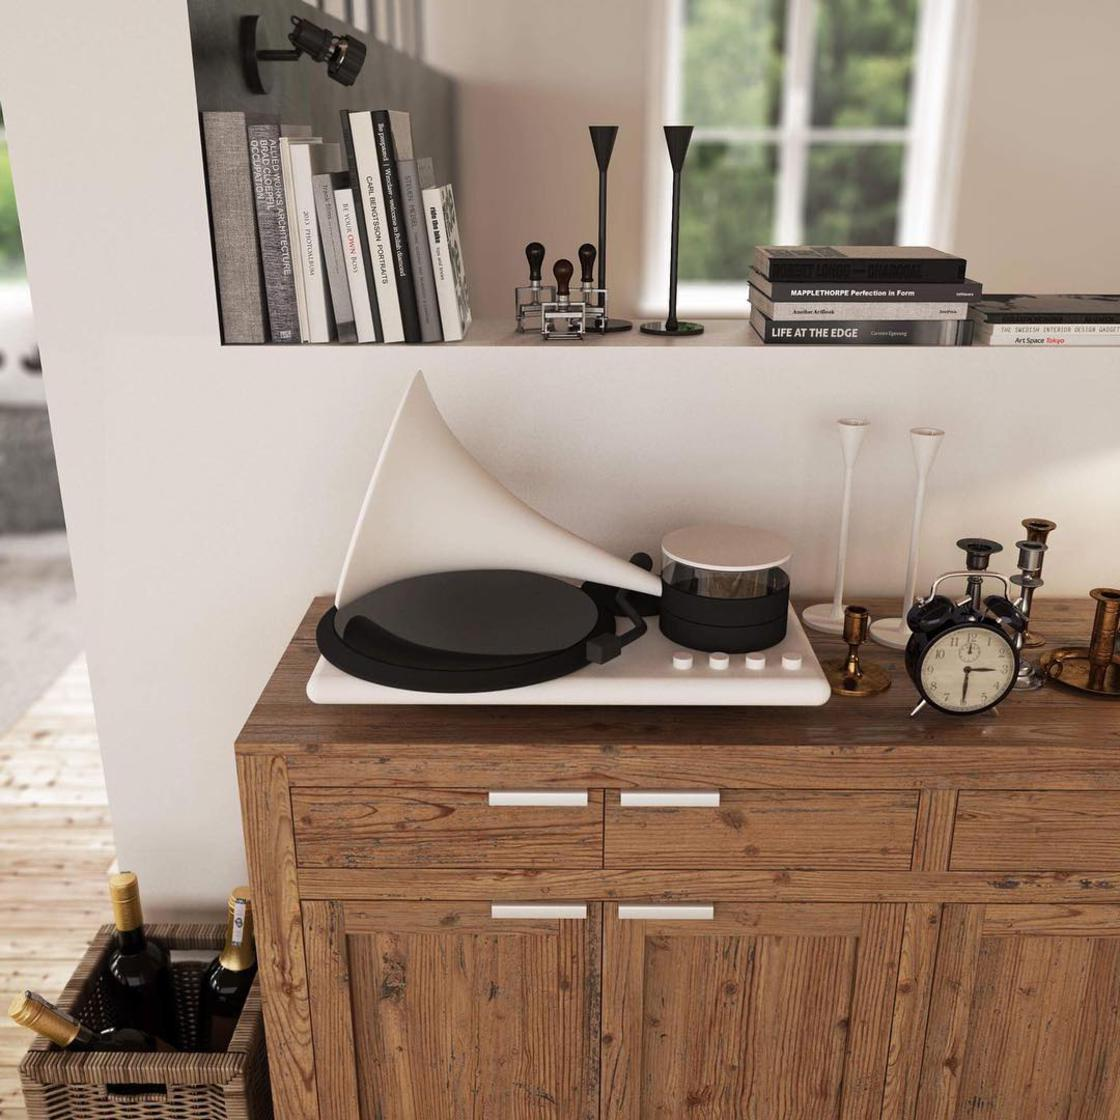 Kozmophone – A modern turntable in tribute to the Phonograph